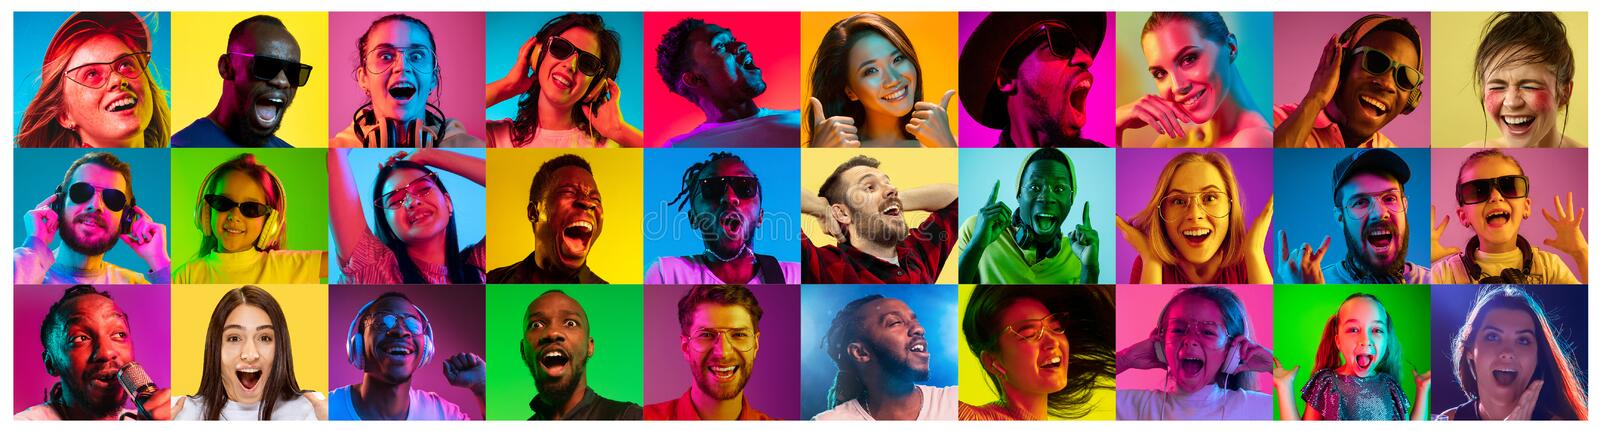 Handsome men and women looking suprised and happy. Beautiful male and female portrait on multicolored neon light backgroud. Smiling, surprised, screaming. Human stock photos